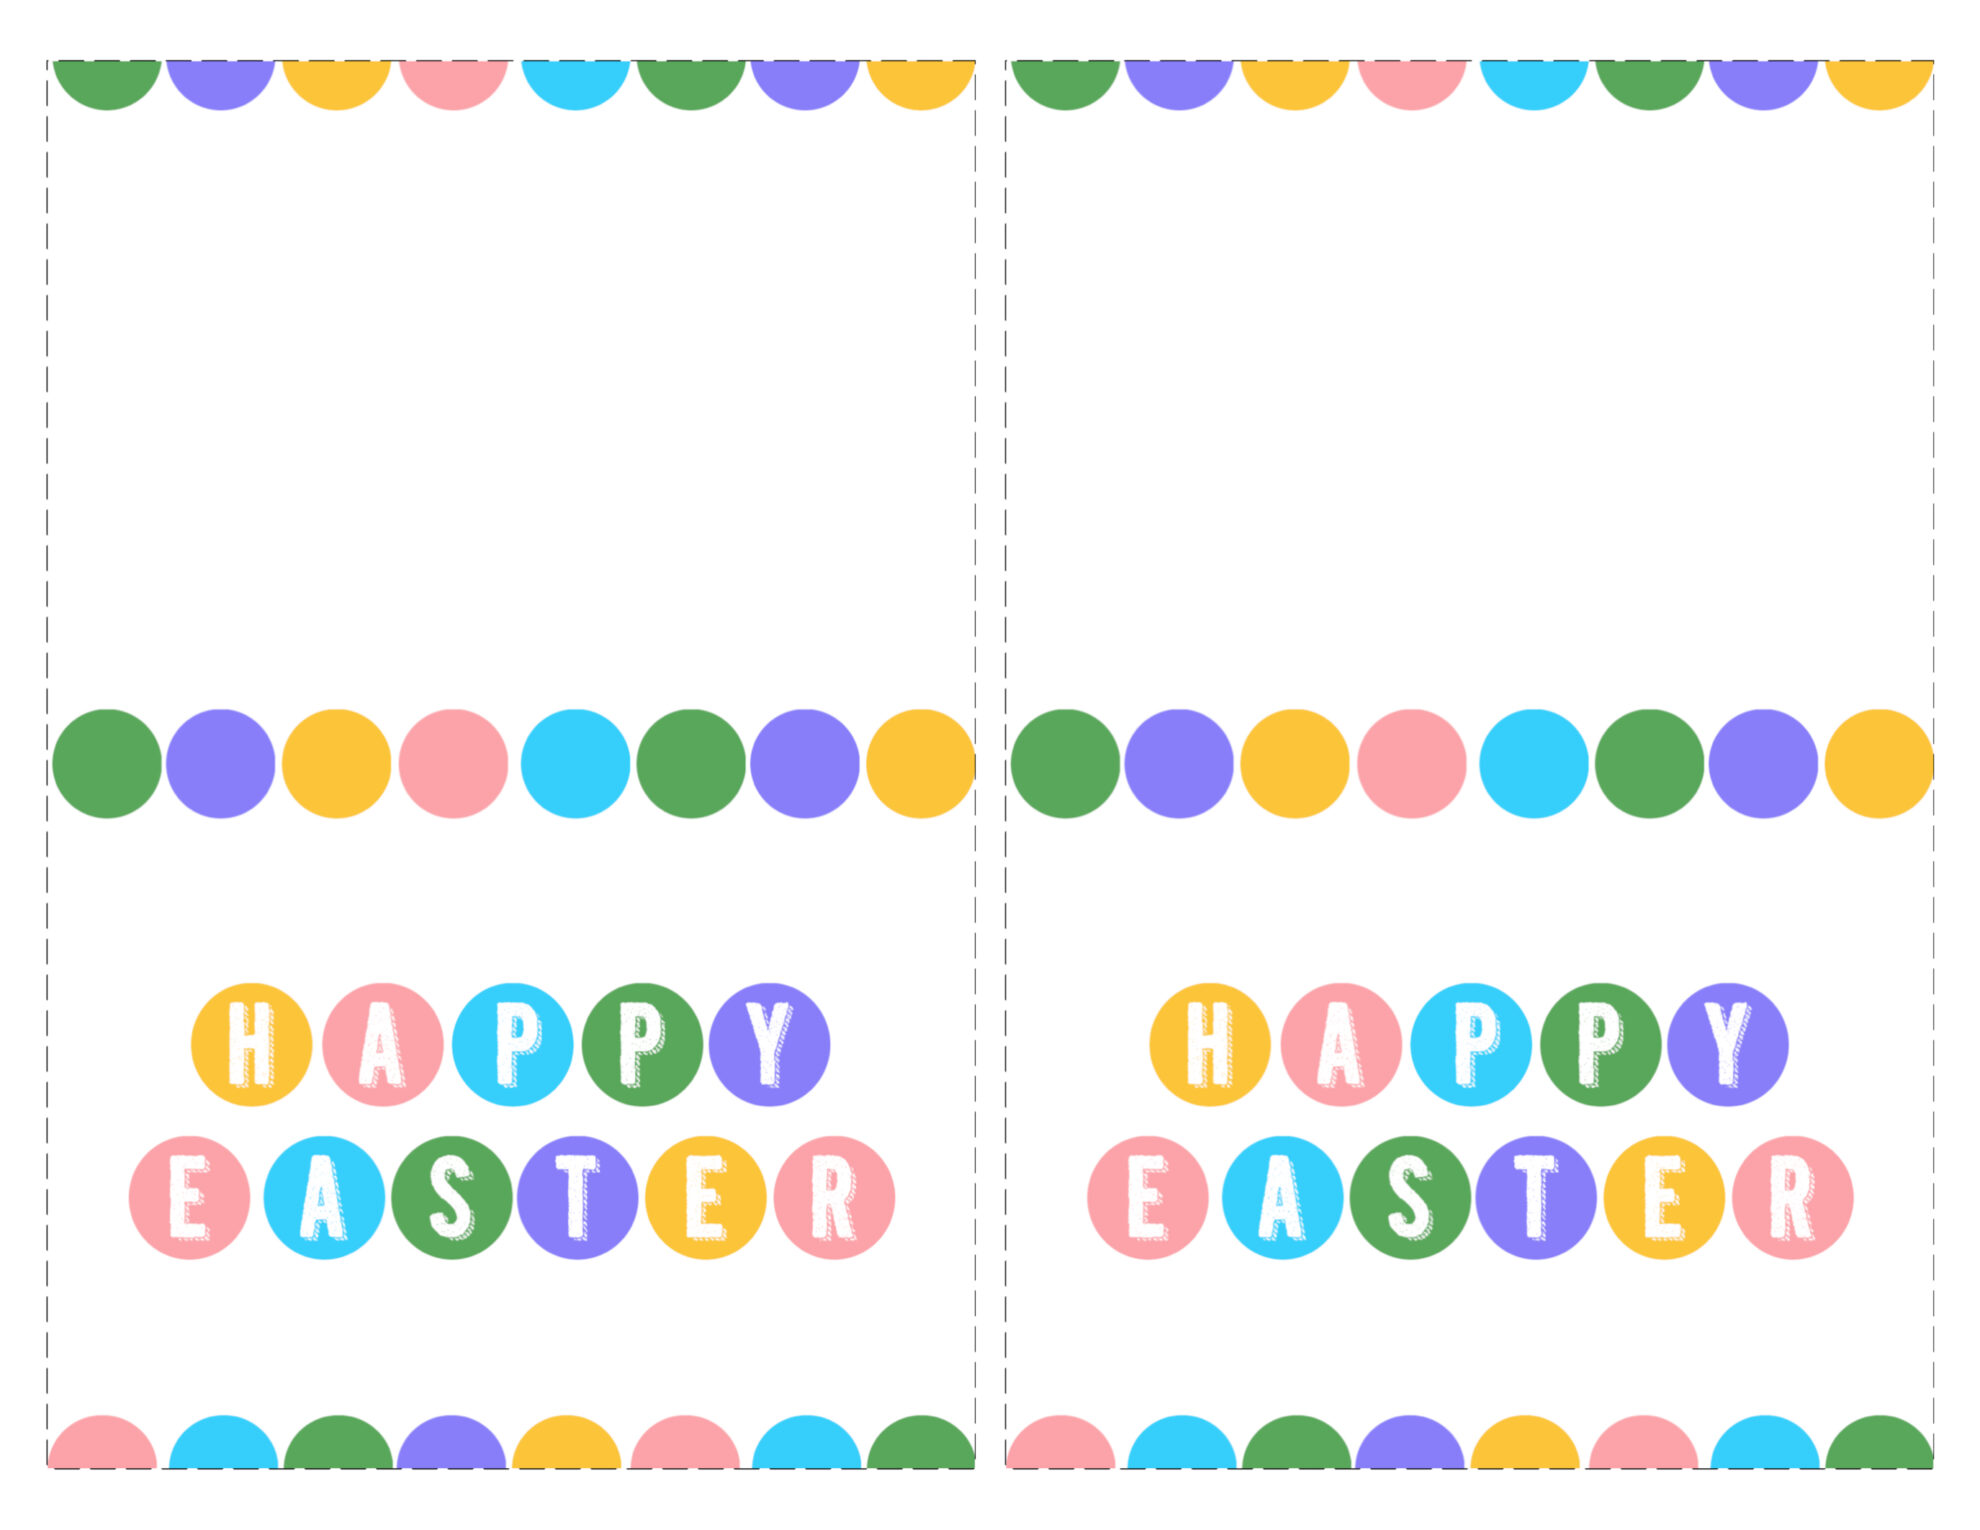 graphic regarding Easter Cards Printable identified as Delighted Easter Playing cards Printable - No cost - Paper Path Style and design